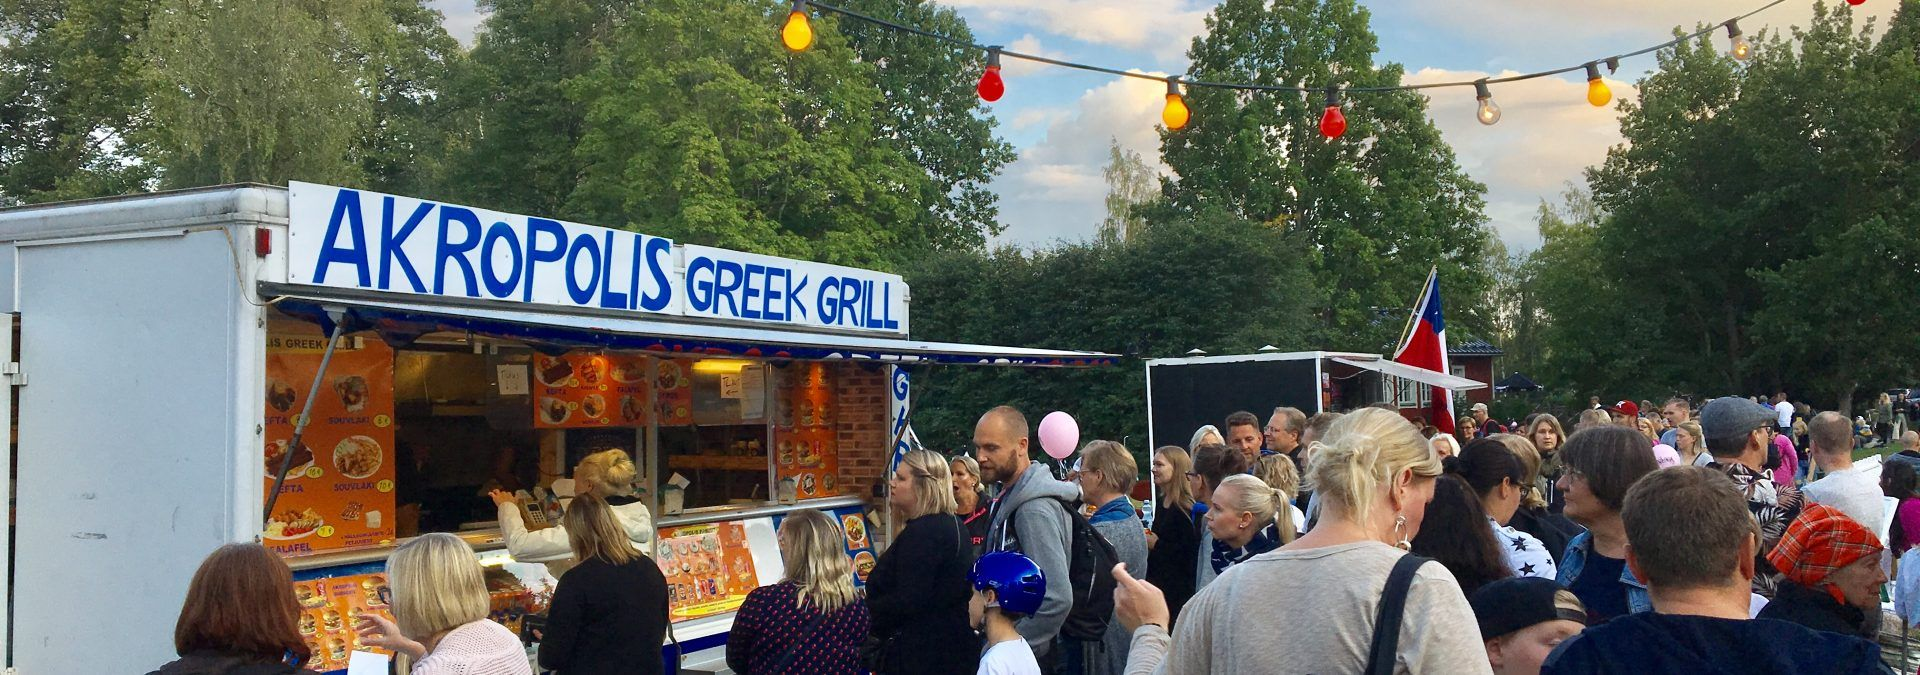 Akropolis Greek Grill